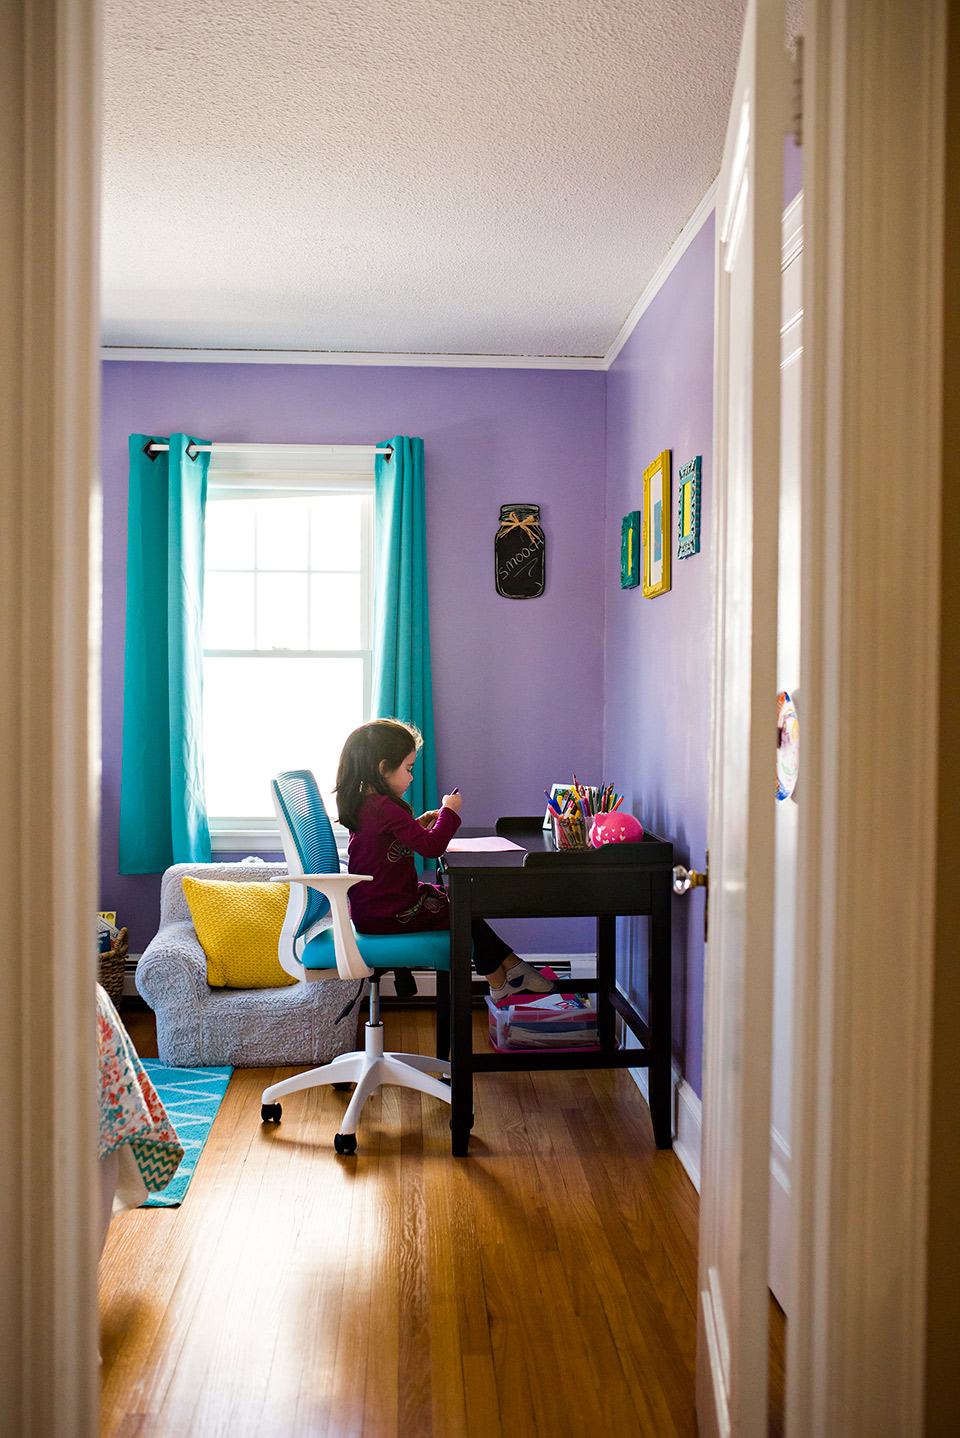 looking in on girl from doorway coloring on her desk in bedroom west hartford ct family photography documentary